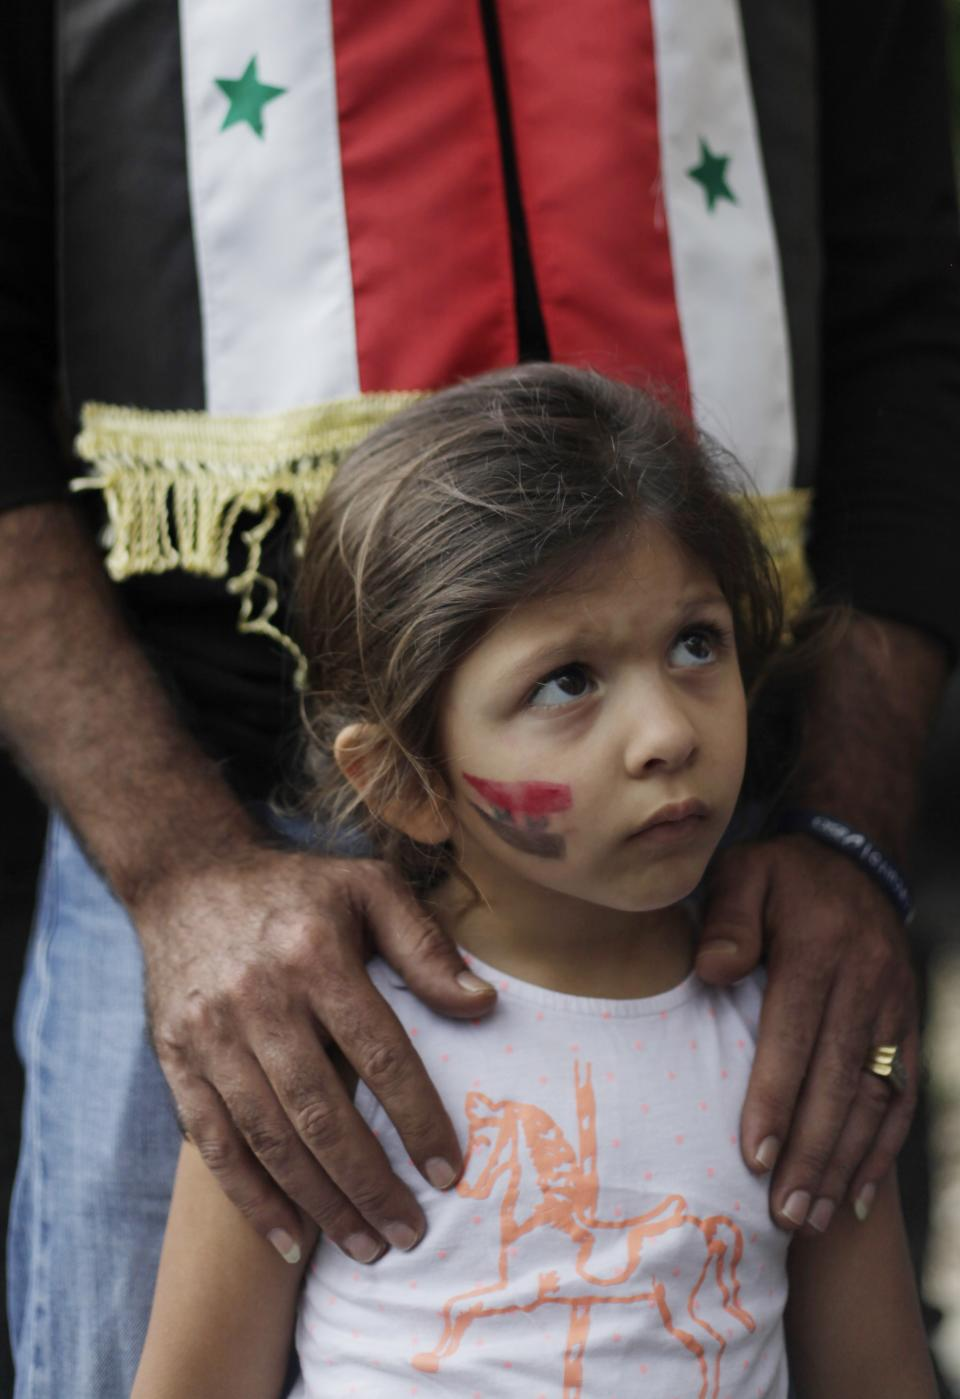 A girl with the Syrian flag painted on her cheek attends a demonstration by adults protesting any military action in Syria by the U.S., outside the U.S. embassy in Caracas, Venezuela, Monday, Sept. 2, 2013. (AP Photo/Ariana Cubillos)